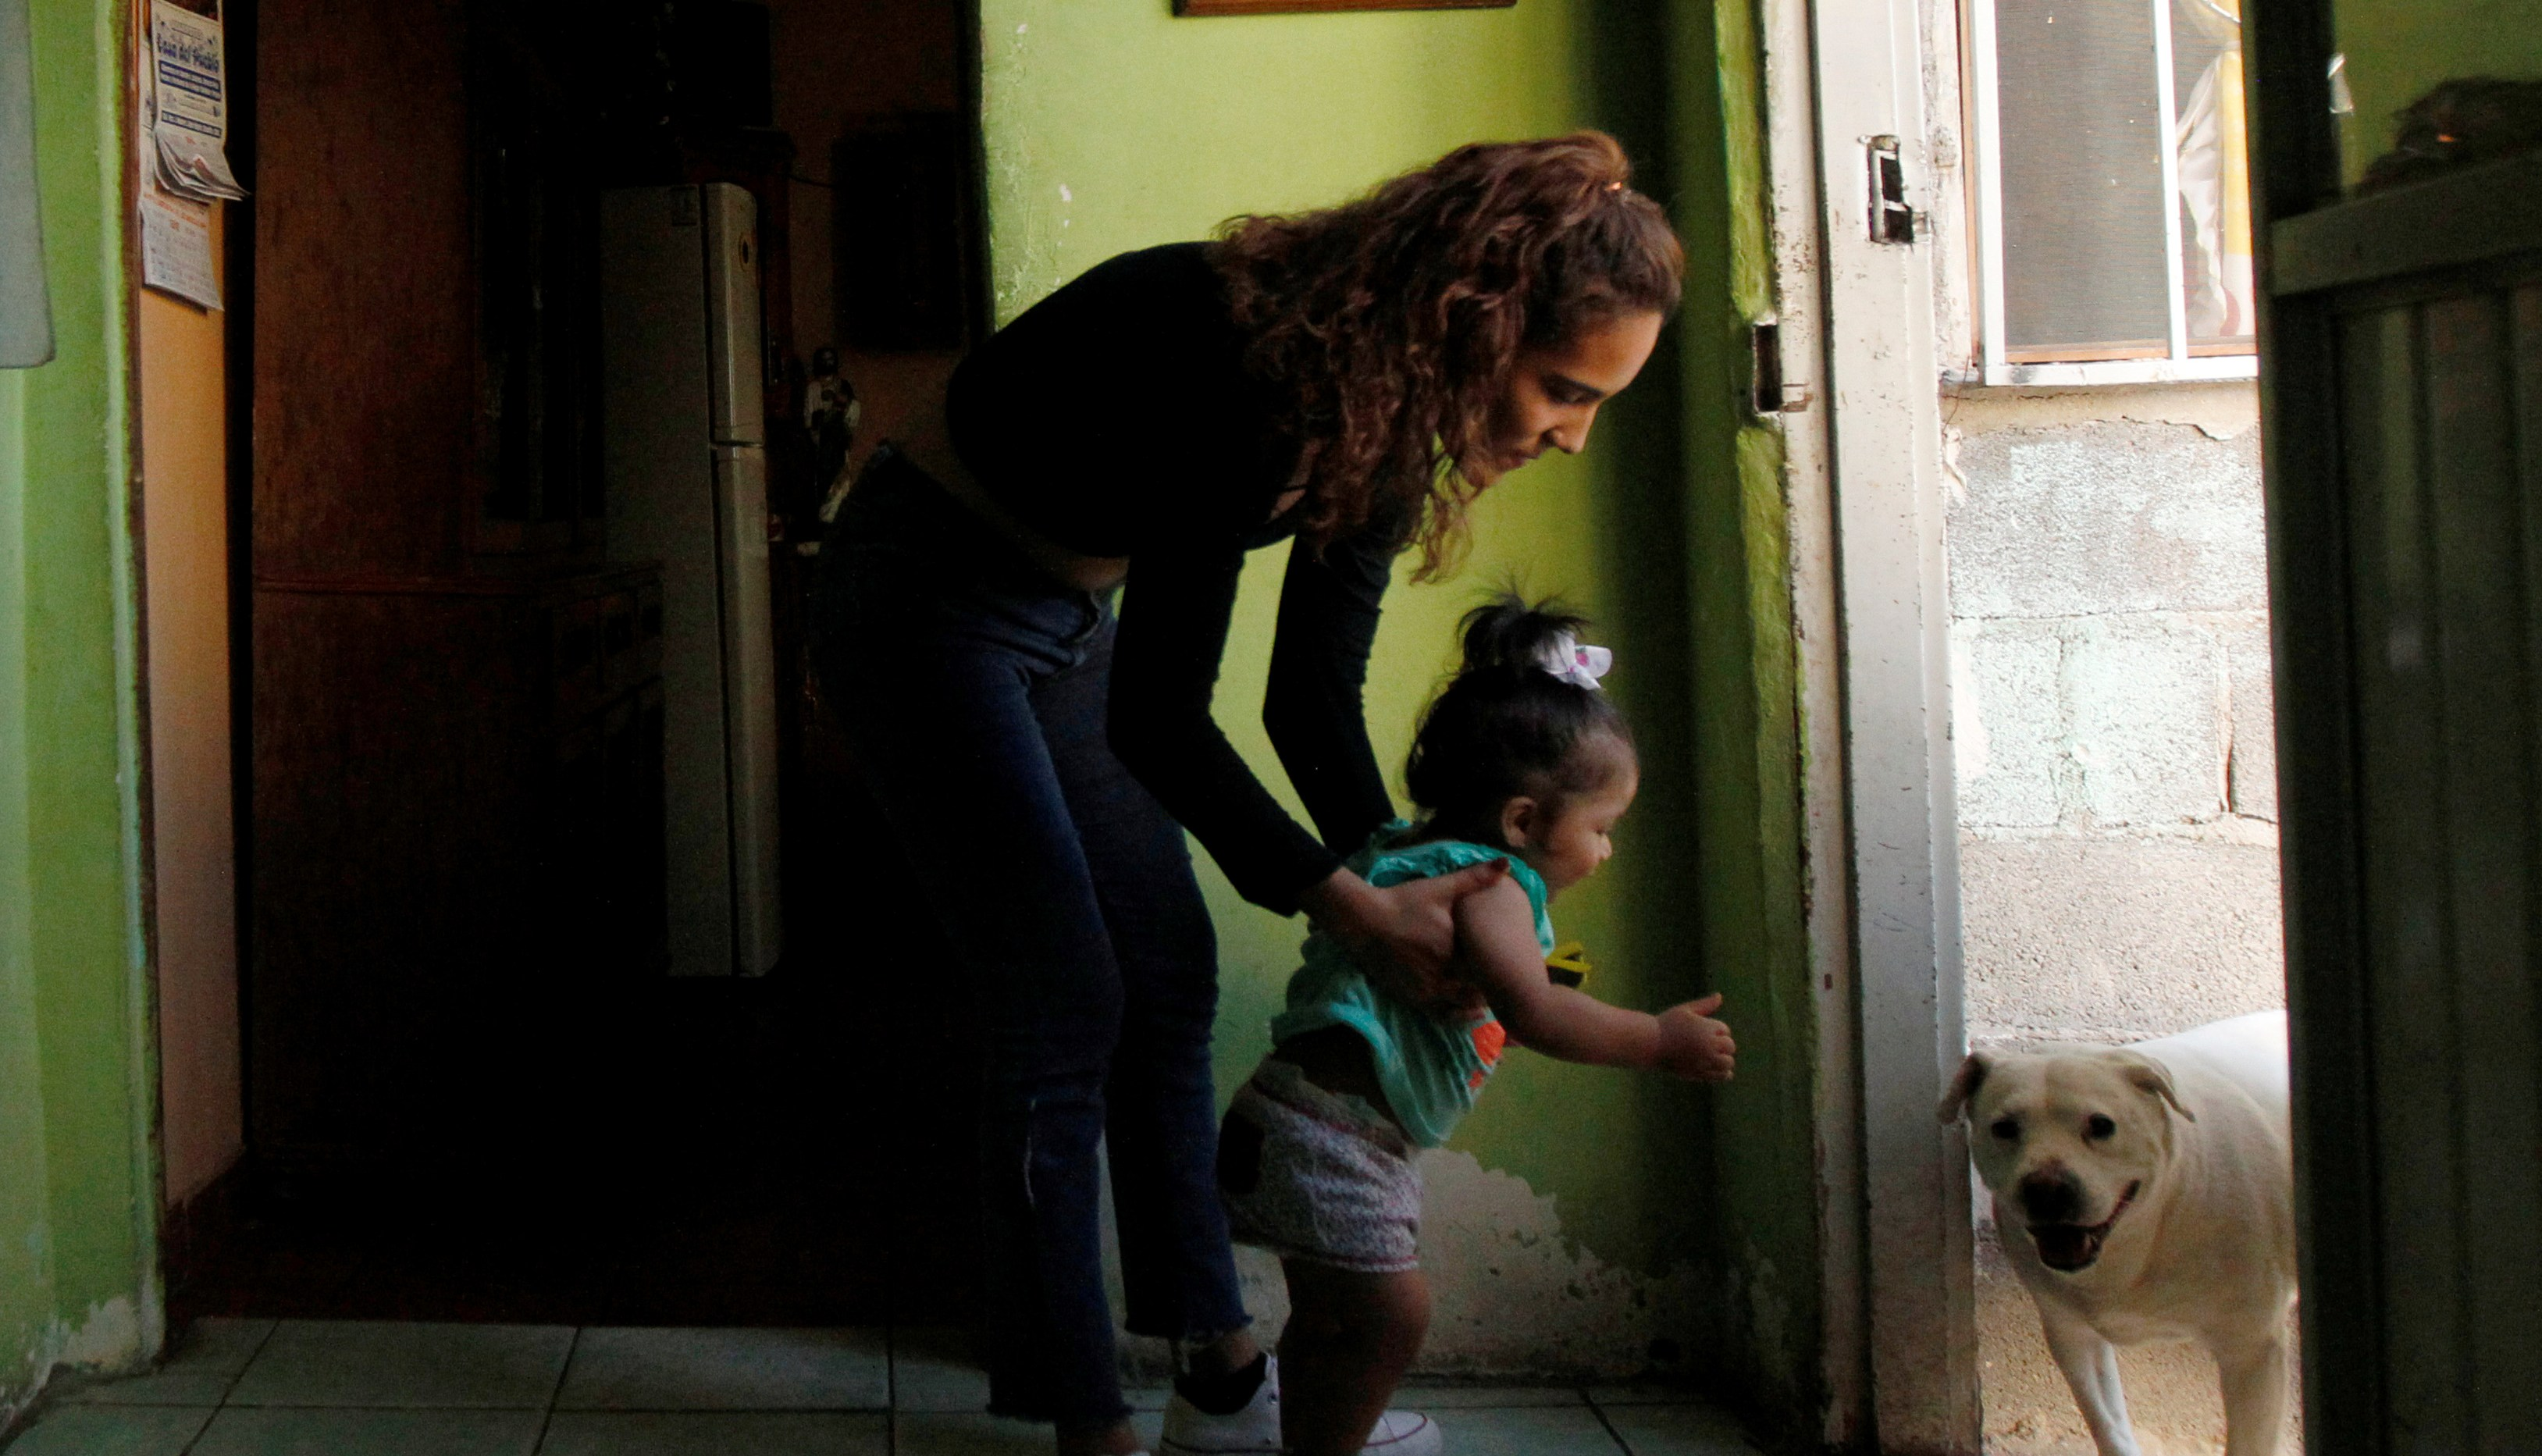 "Fatima Paola Pizarro (L), holds her daughter Aitana Pizarro at her grandparent's home in Ciudad Juarez, Mexico May 8, 2018. Fatima is the daughter of Marcelino Pizarro who lives in El Paso, U.S. REUTERS/Jose Luis Gonzalez   SEARCH ""MARCELINO PIZARRO"" FOR THIS STORY. SEARCH ""WIDER IMAGE"" FOR ALL STORIES. - RC1EC57A0B00"